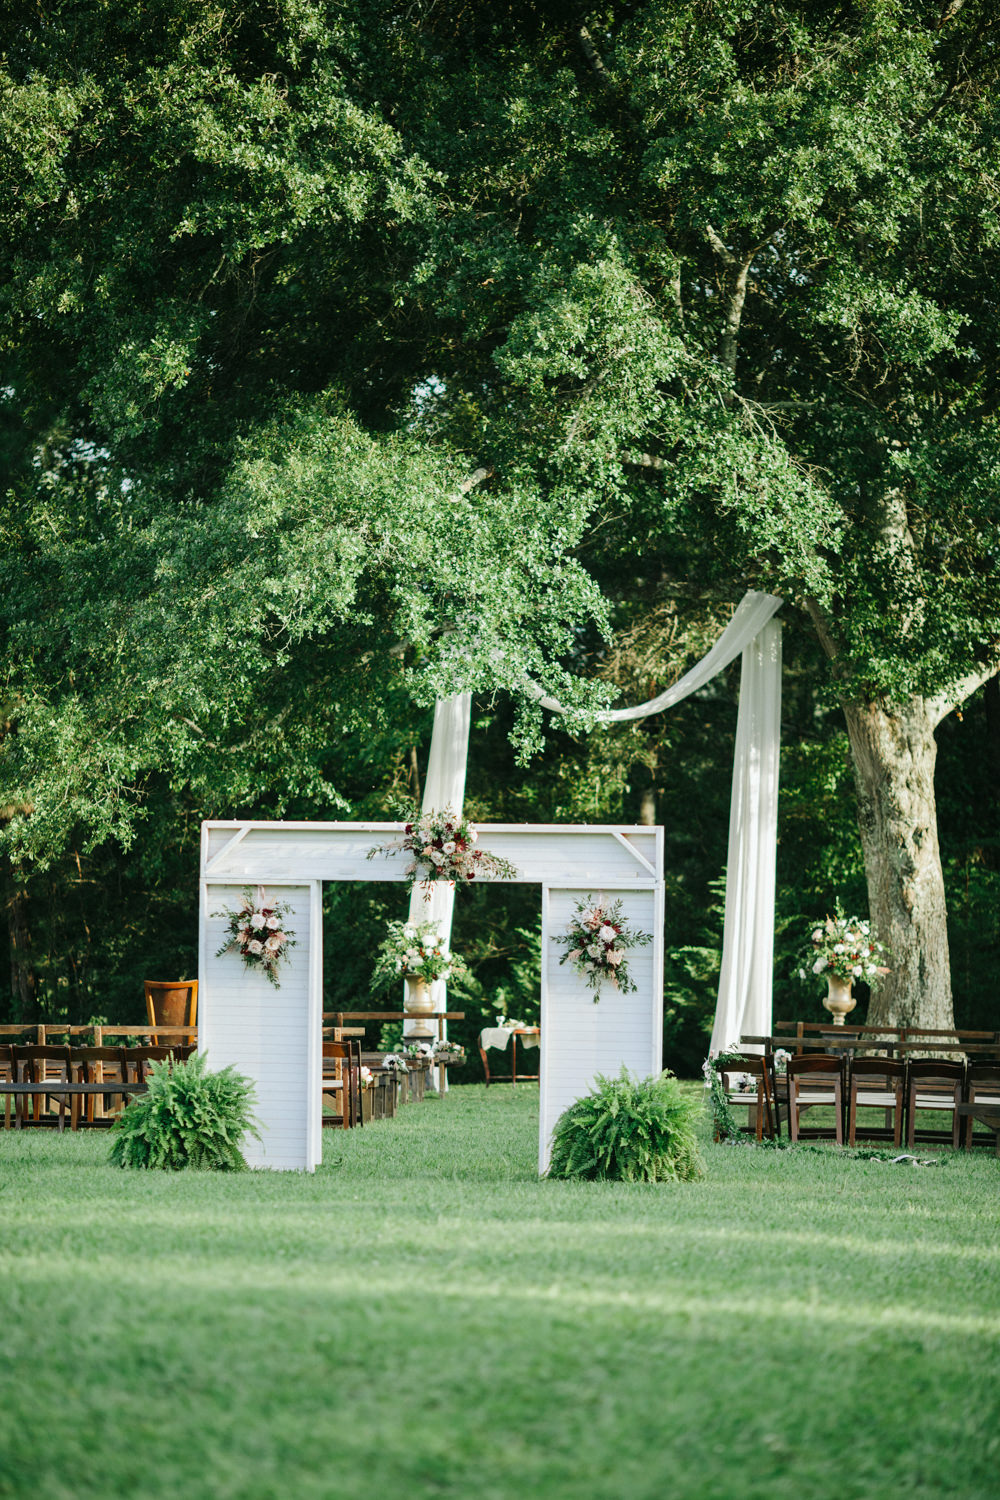 sweetmeadowfarmwedding-2051.jpg